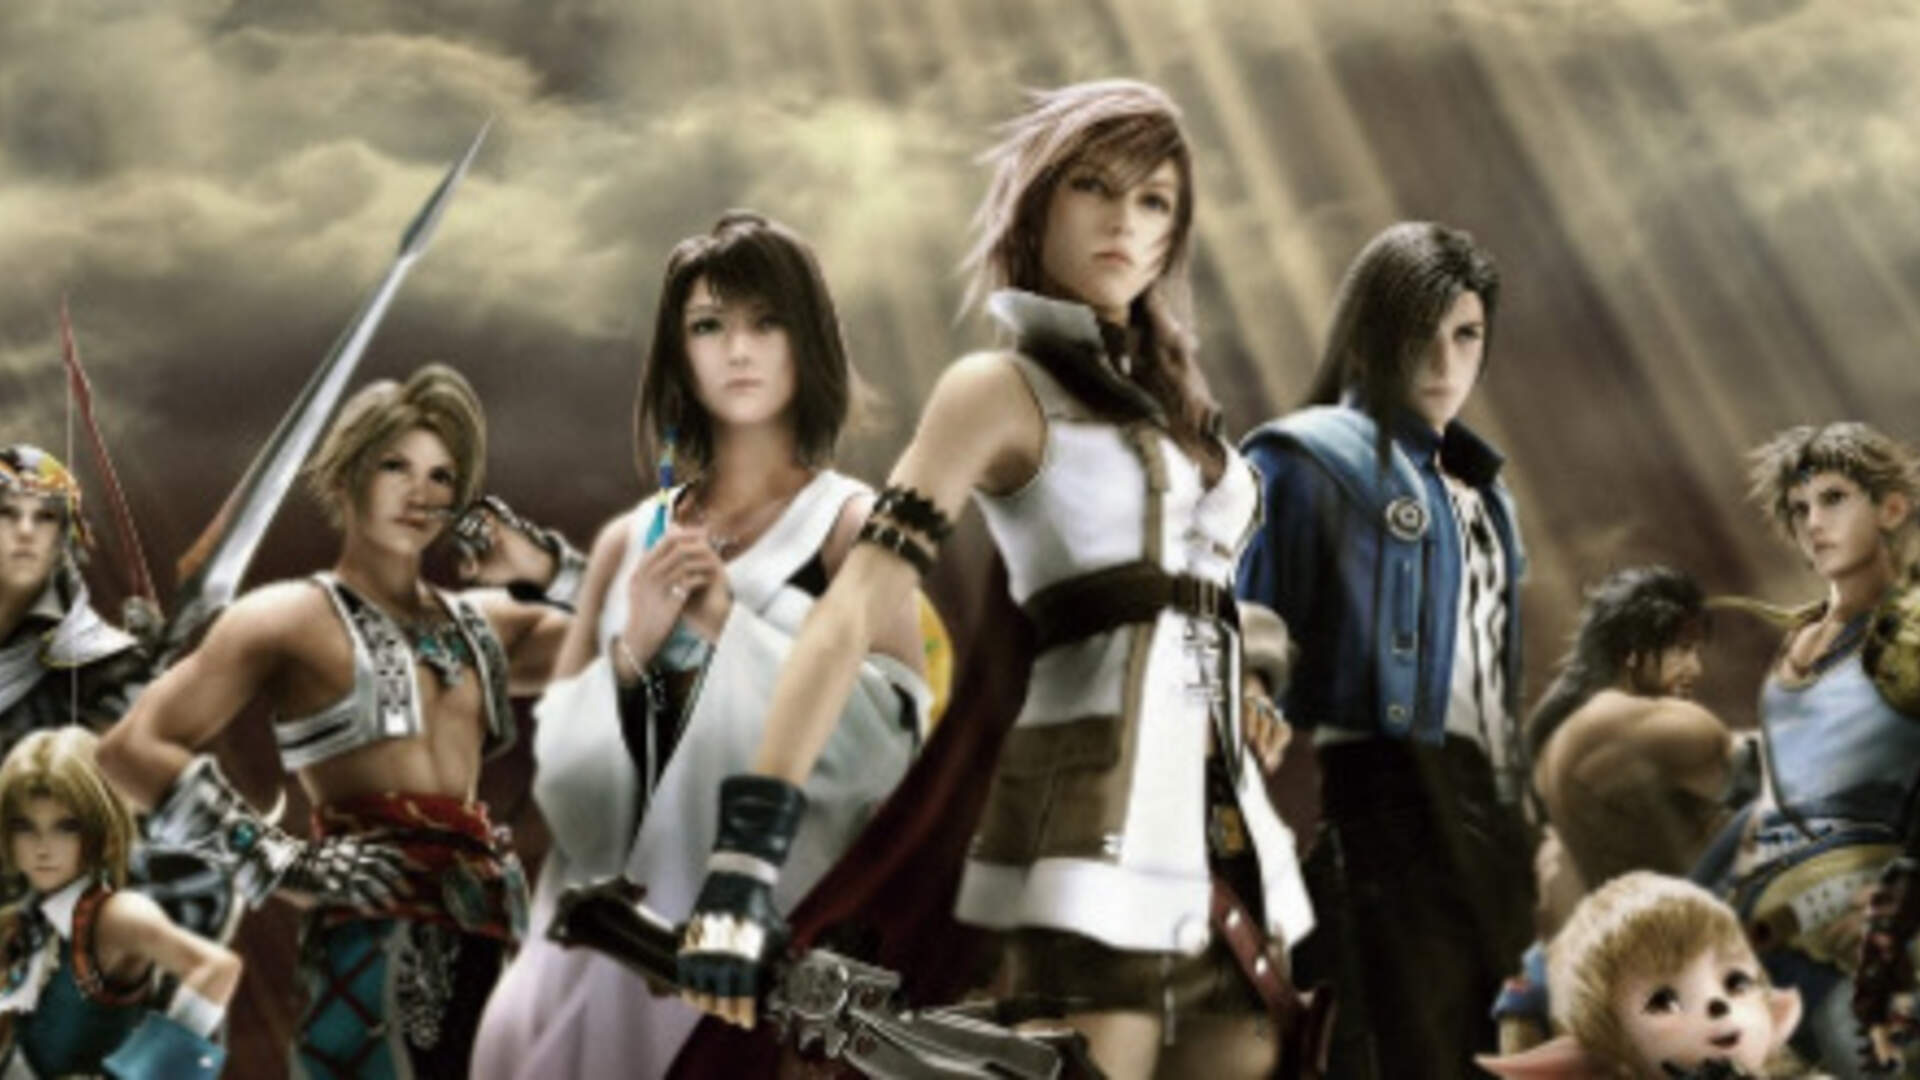 Who Makes the Best Final Fantasy Games?